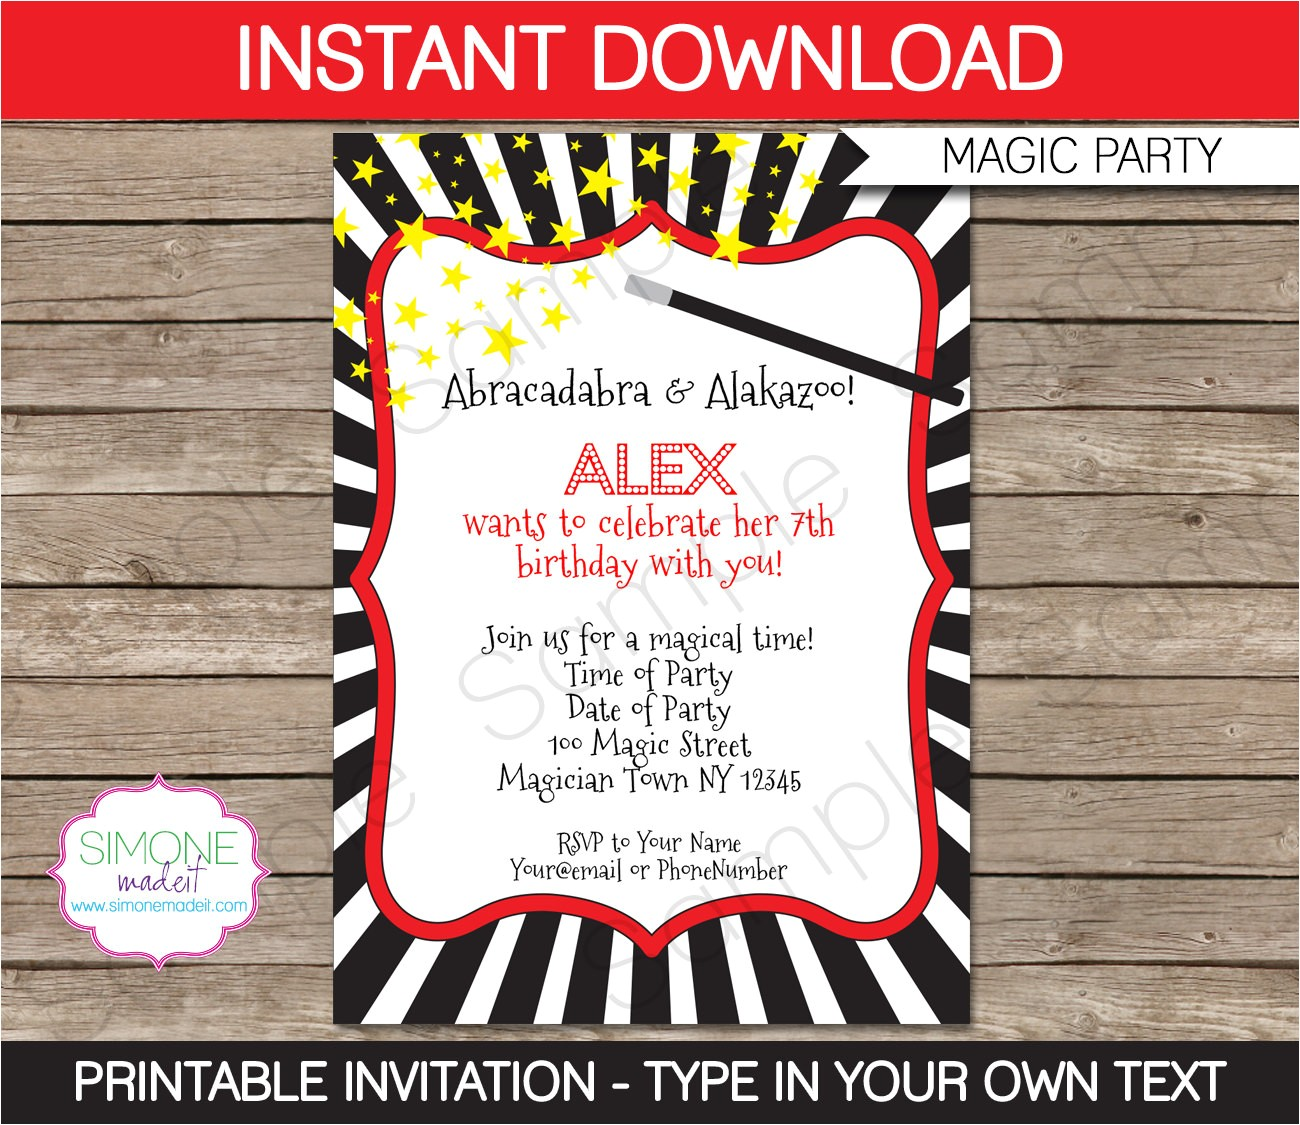 magic party invitation instant download